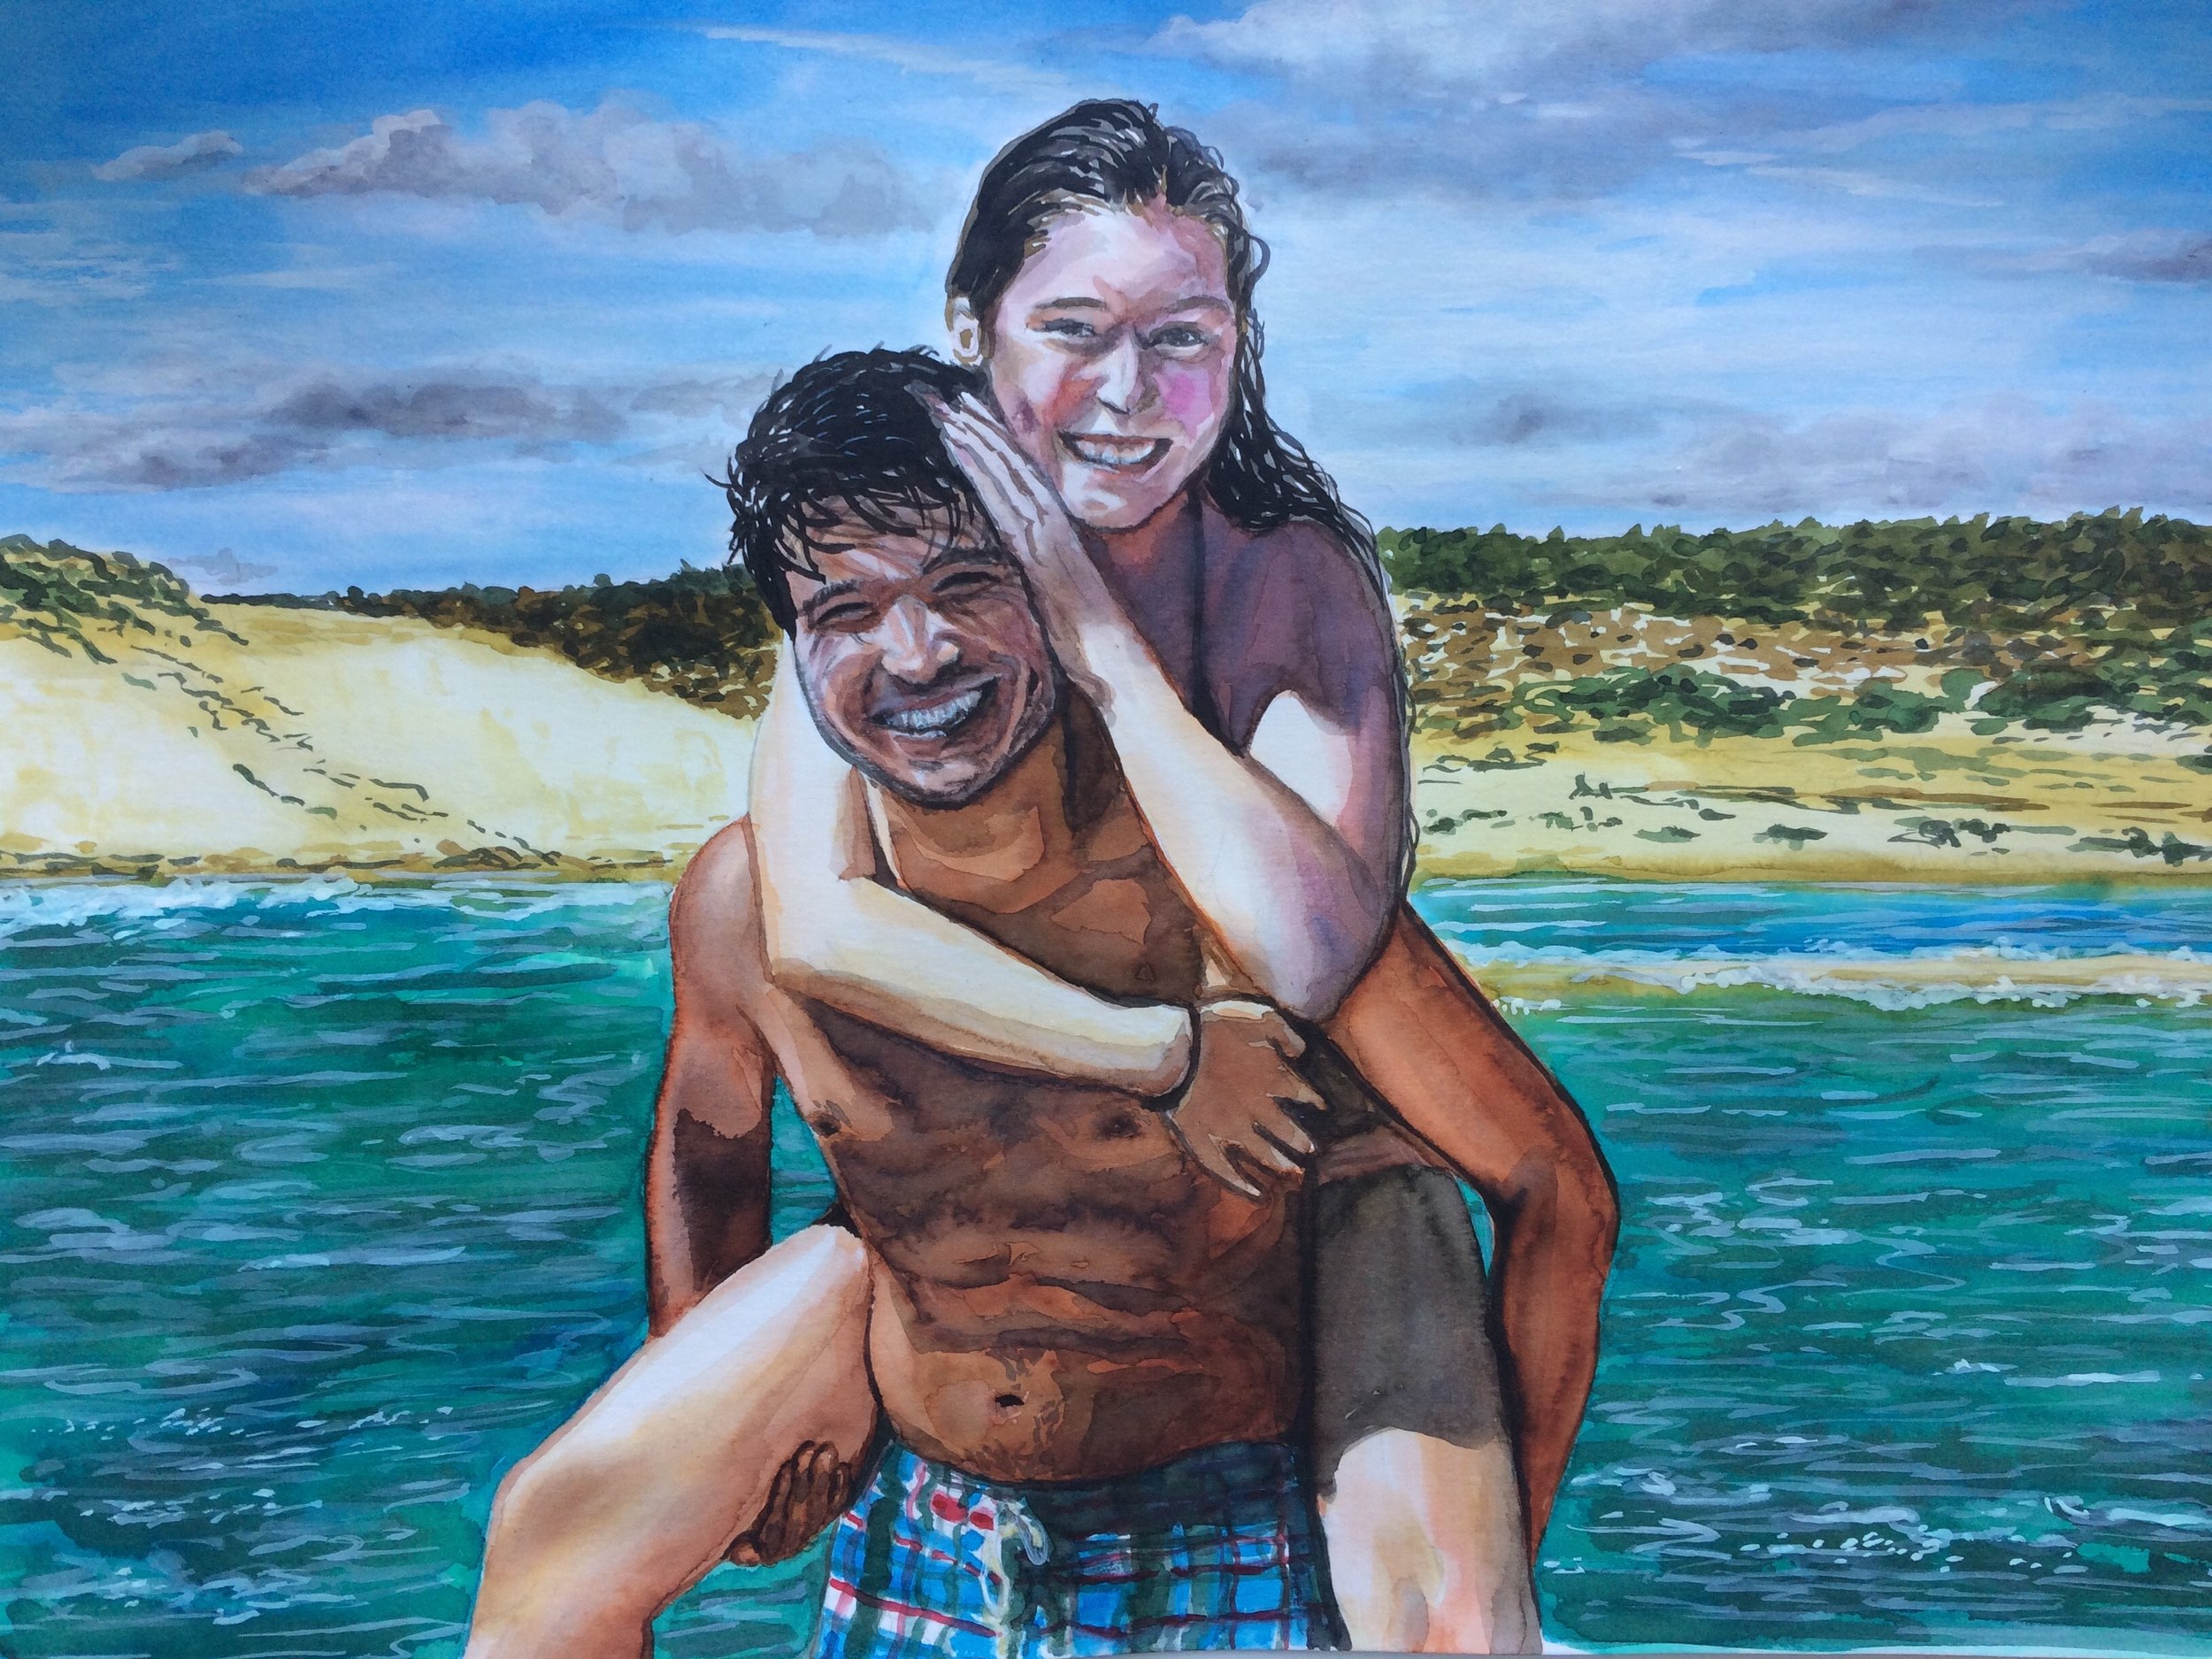 Young couple at leisure time. Watercolor on Canson Illustration Paper (250g/m2), A3 (42x29,7 cm). Sold. Commissioned work. (Unavailable.)